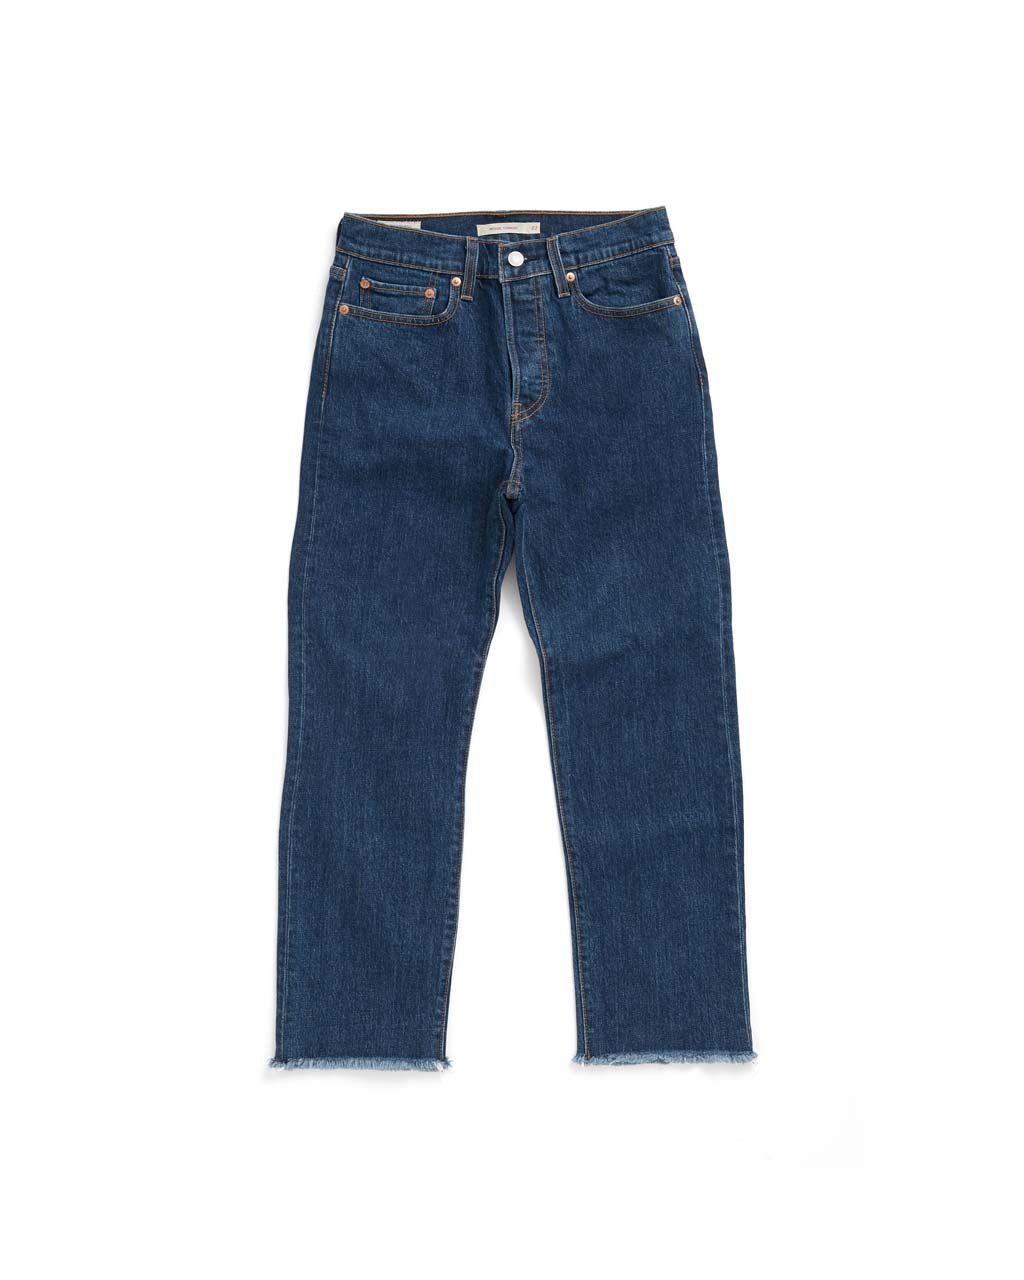 flat view of straight leg, cropped, frayed hem jeans